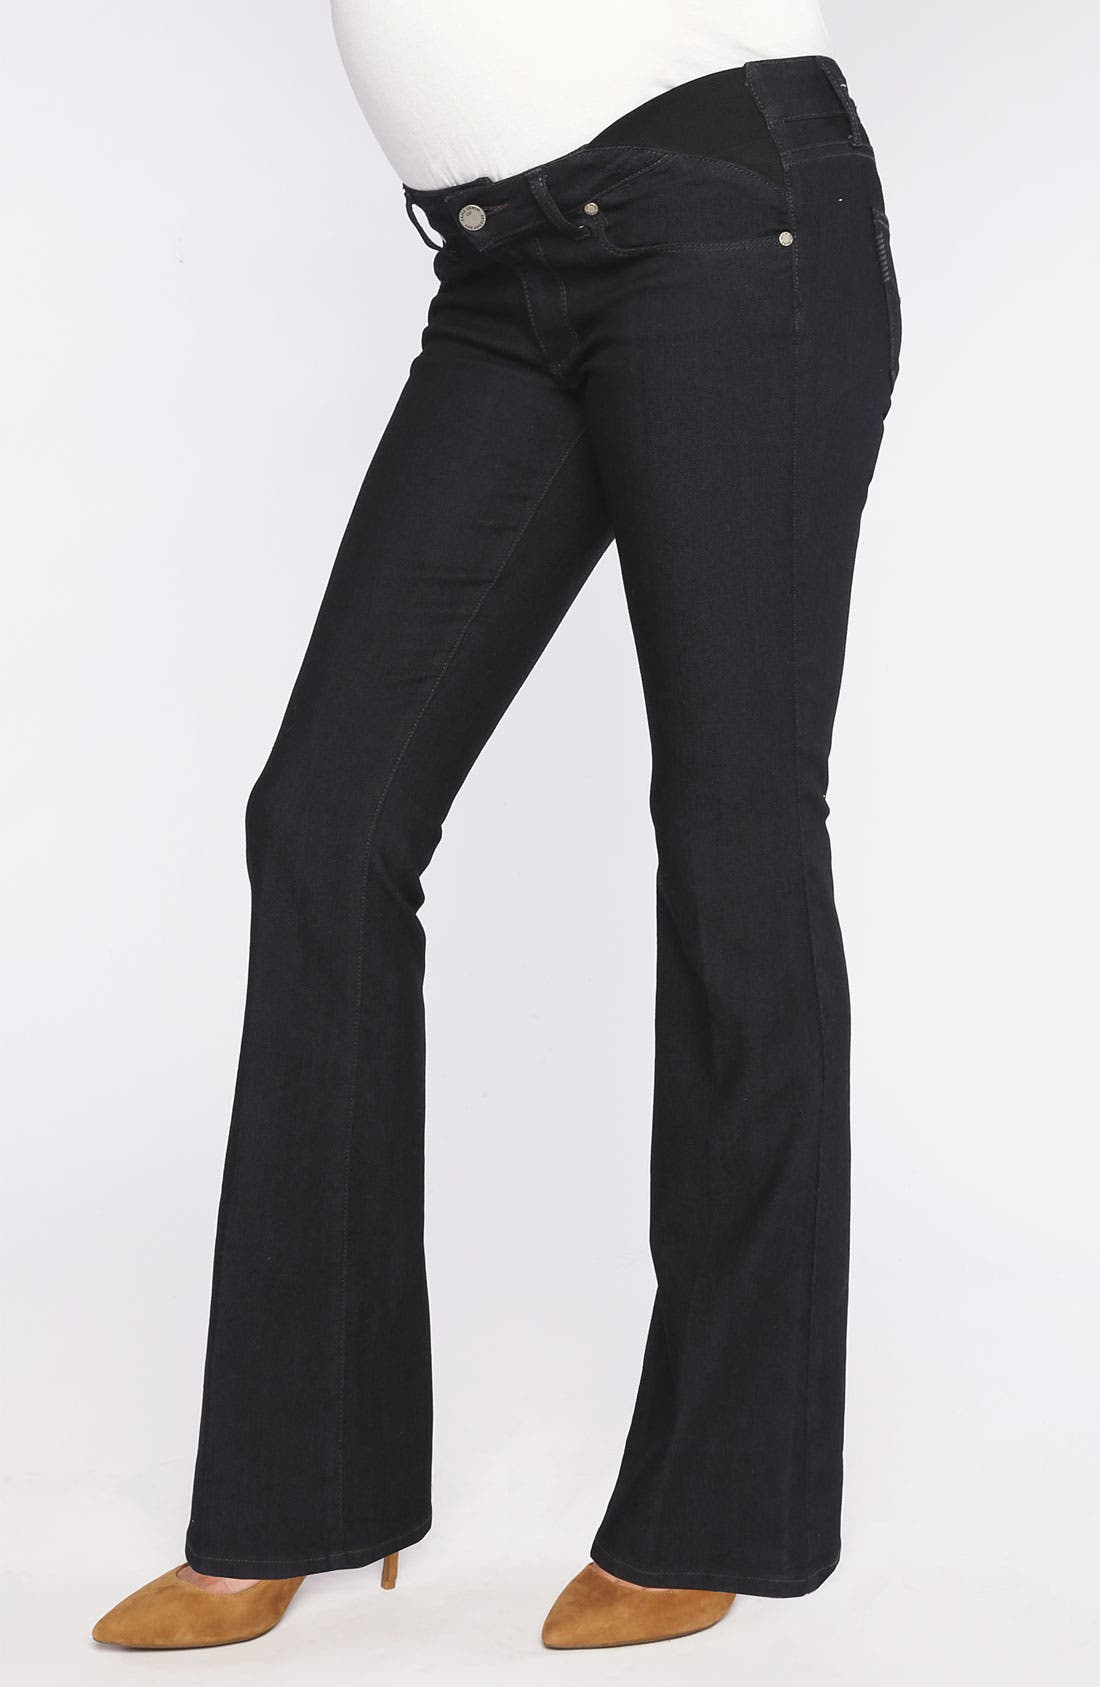 Main Image - Paige Denim 'Skyline' Maternity Bootcut Jeans (Petite) (Twilight)